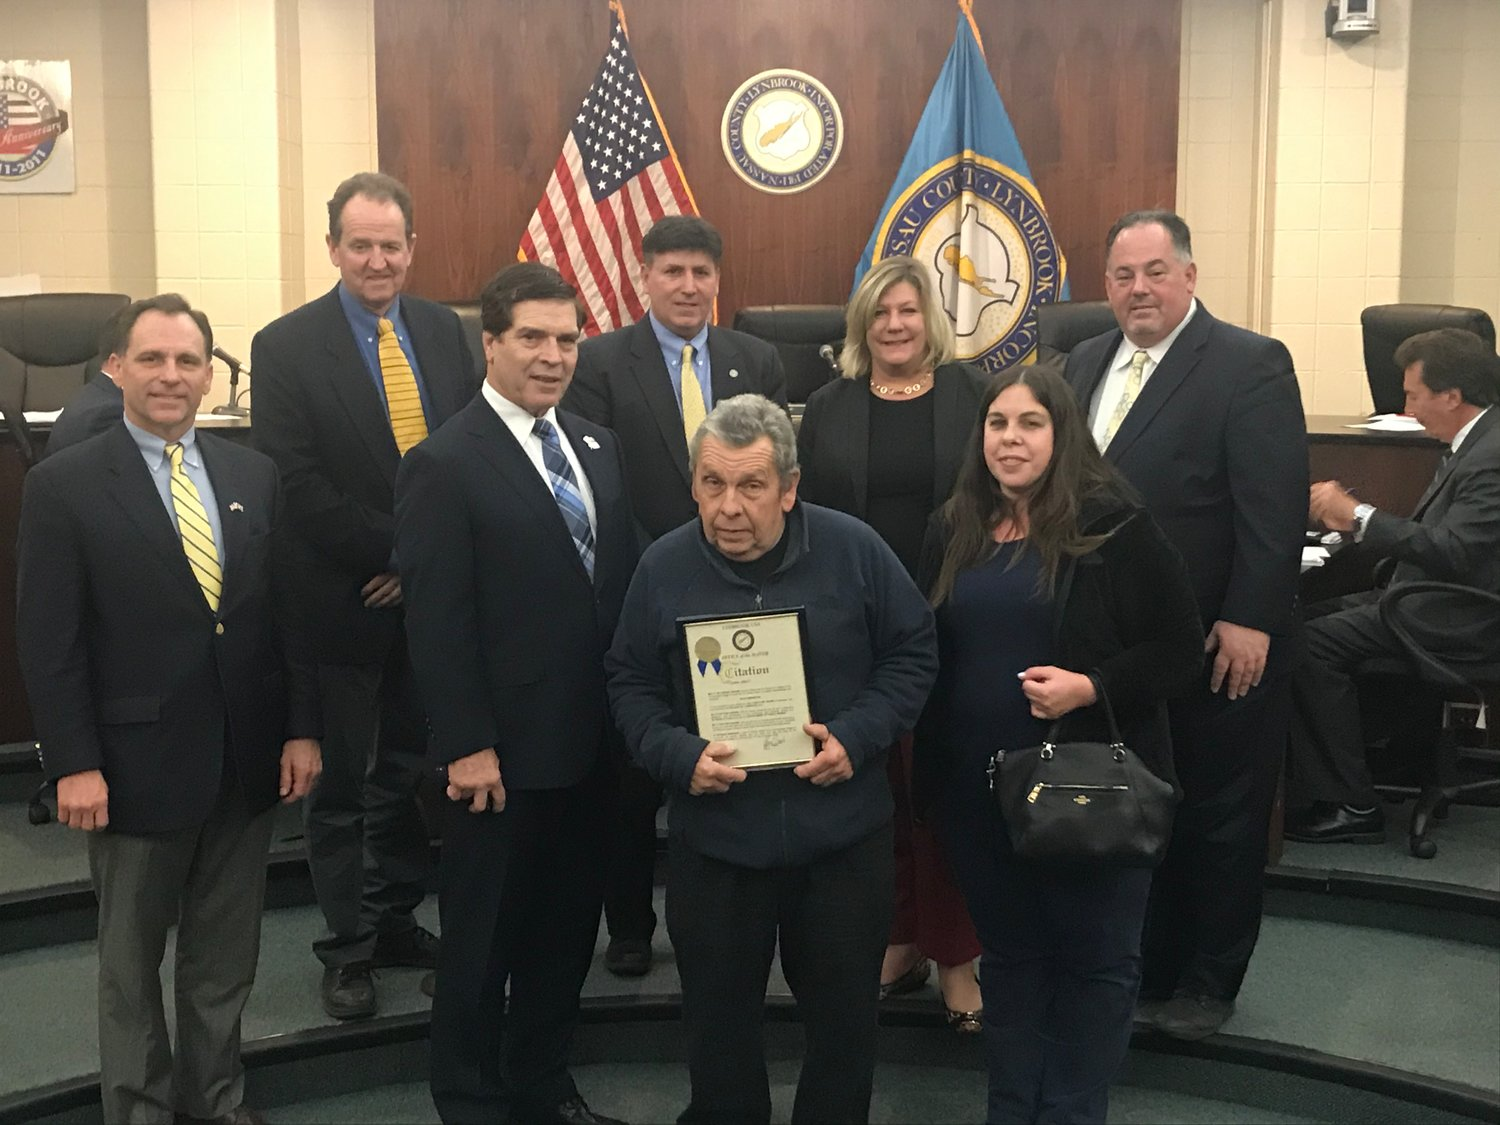 Department of Public Works employee Pat Brewster, center, was also honored upon his retirement after serving the village for 36 years.